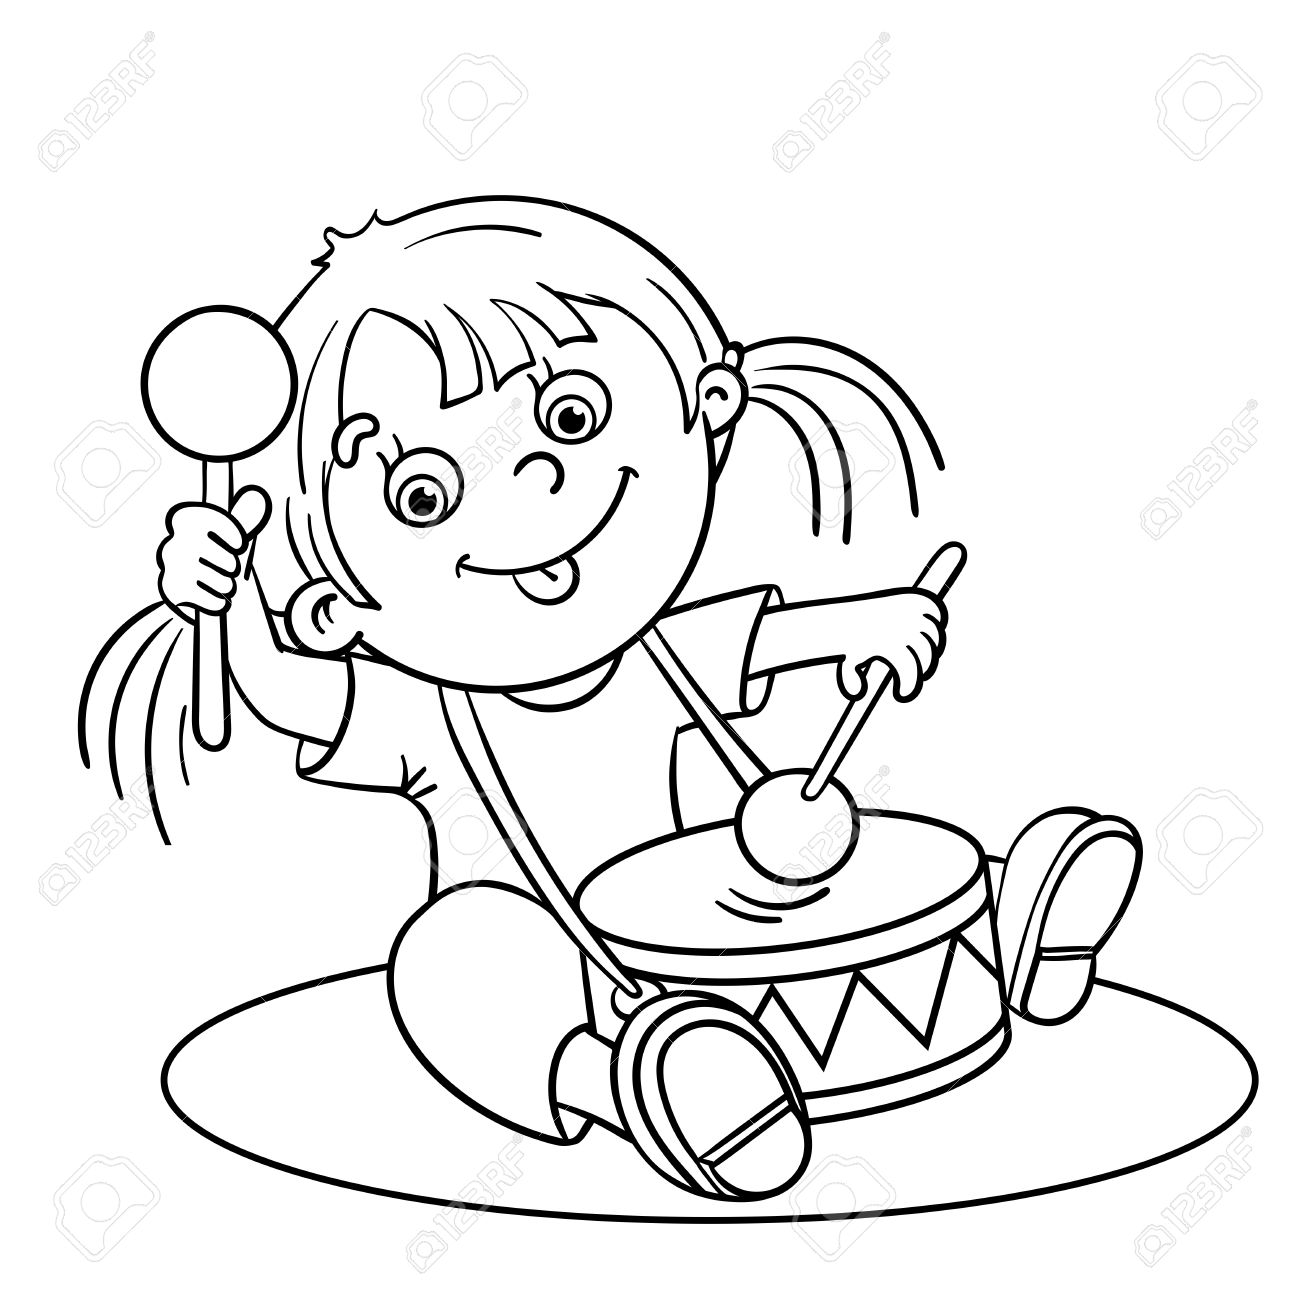 Coloring pictures drums - Cartoon Girl Playing Drums Colring Page Jpg 1300x1300 Cartoon Characters Playing Drums Coloring Pages